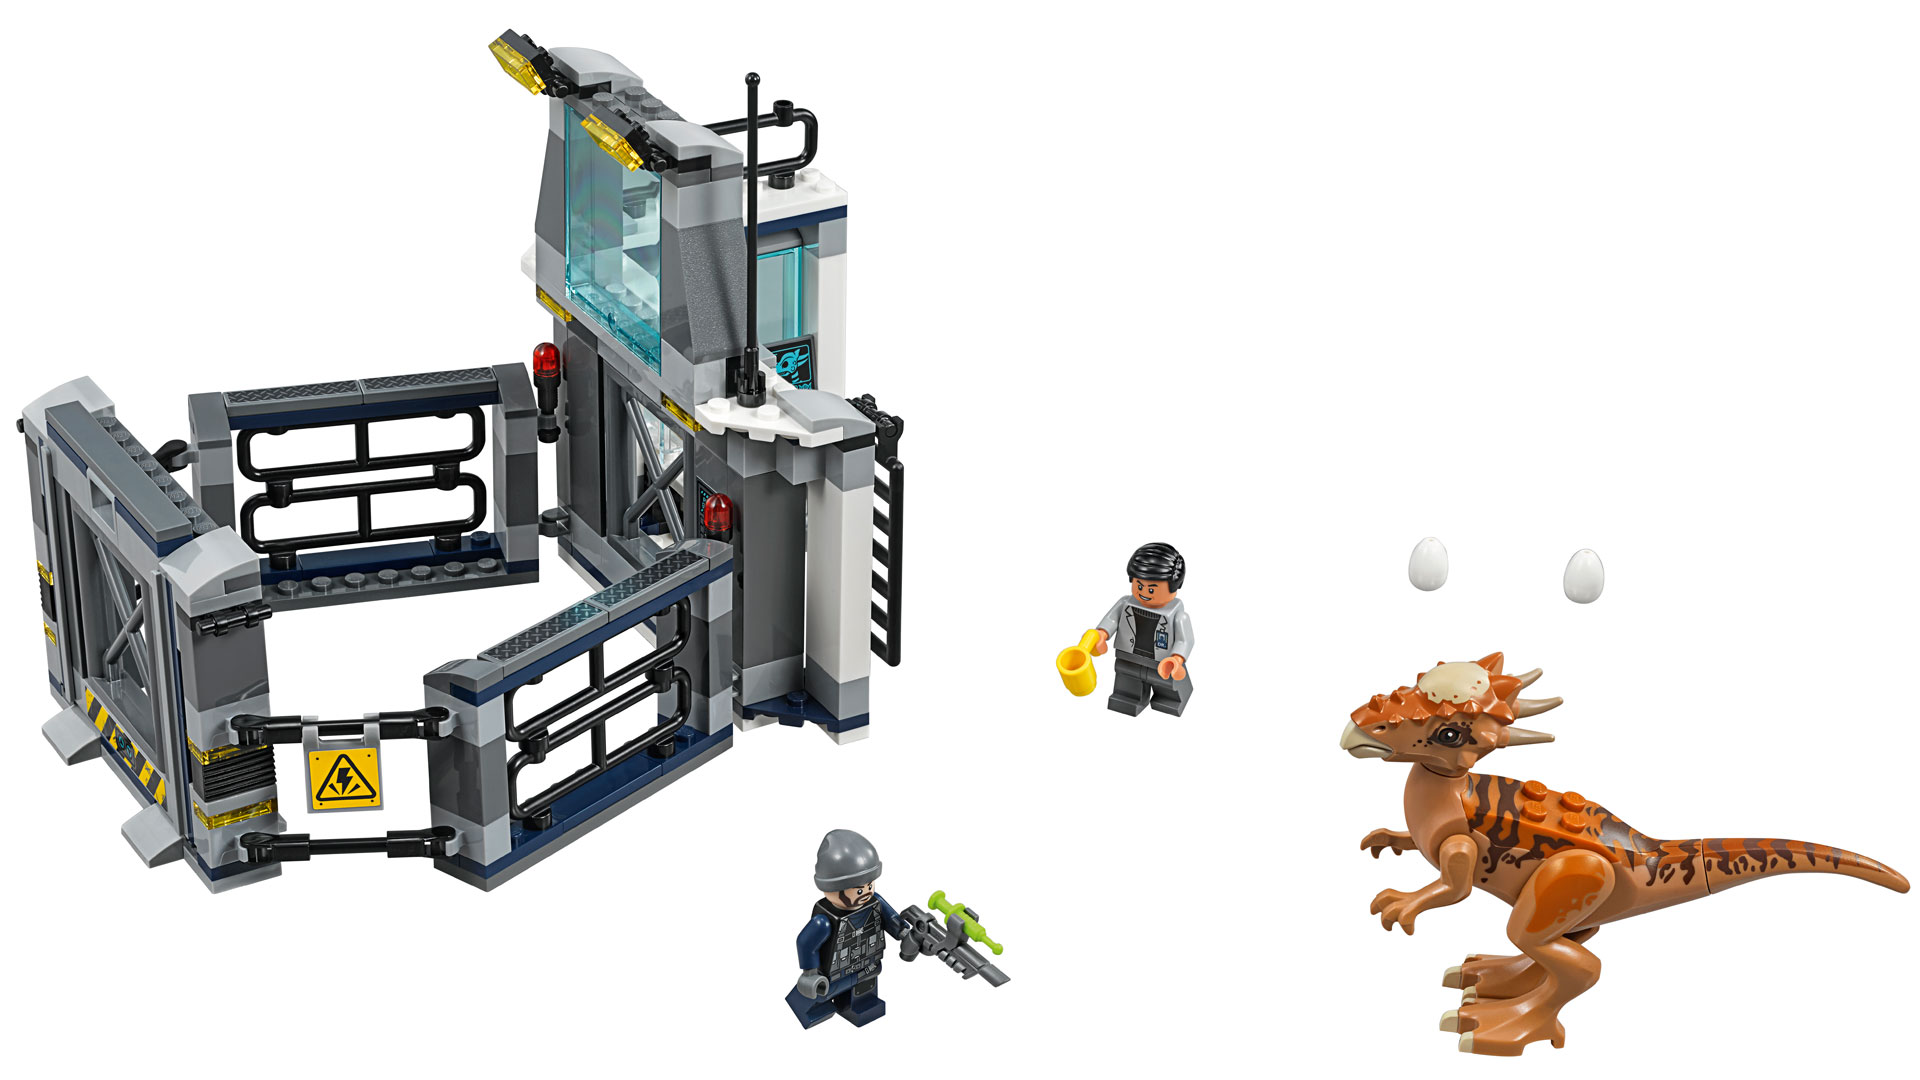 LEGO Jurassic World Set 75927 Stygimoloch Breakout at Toy Fair 2018